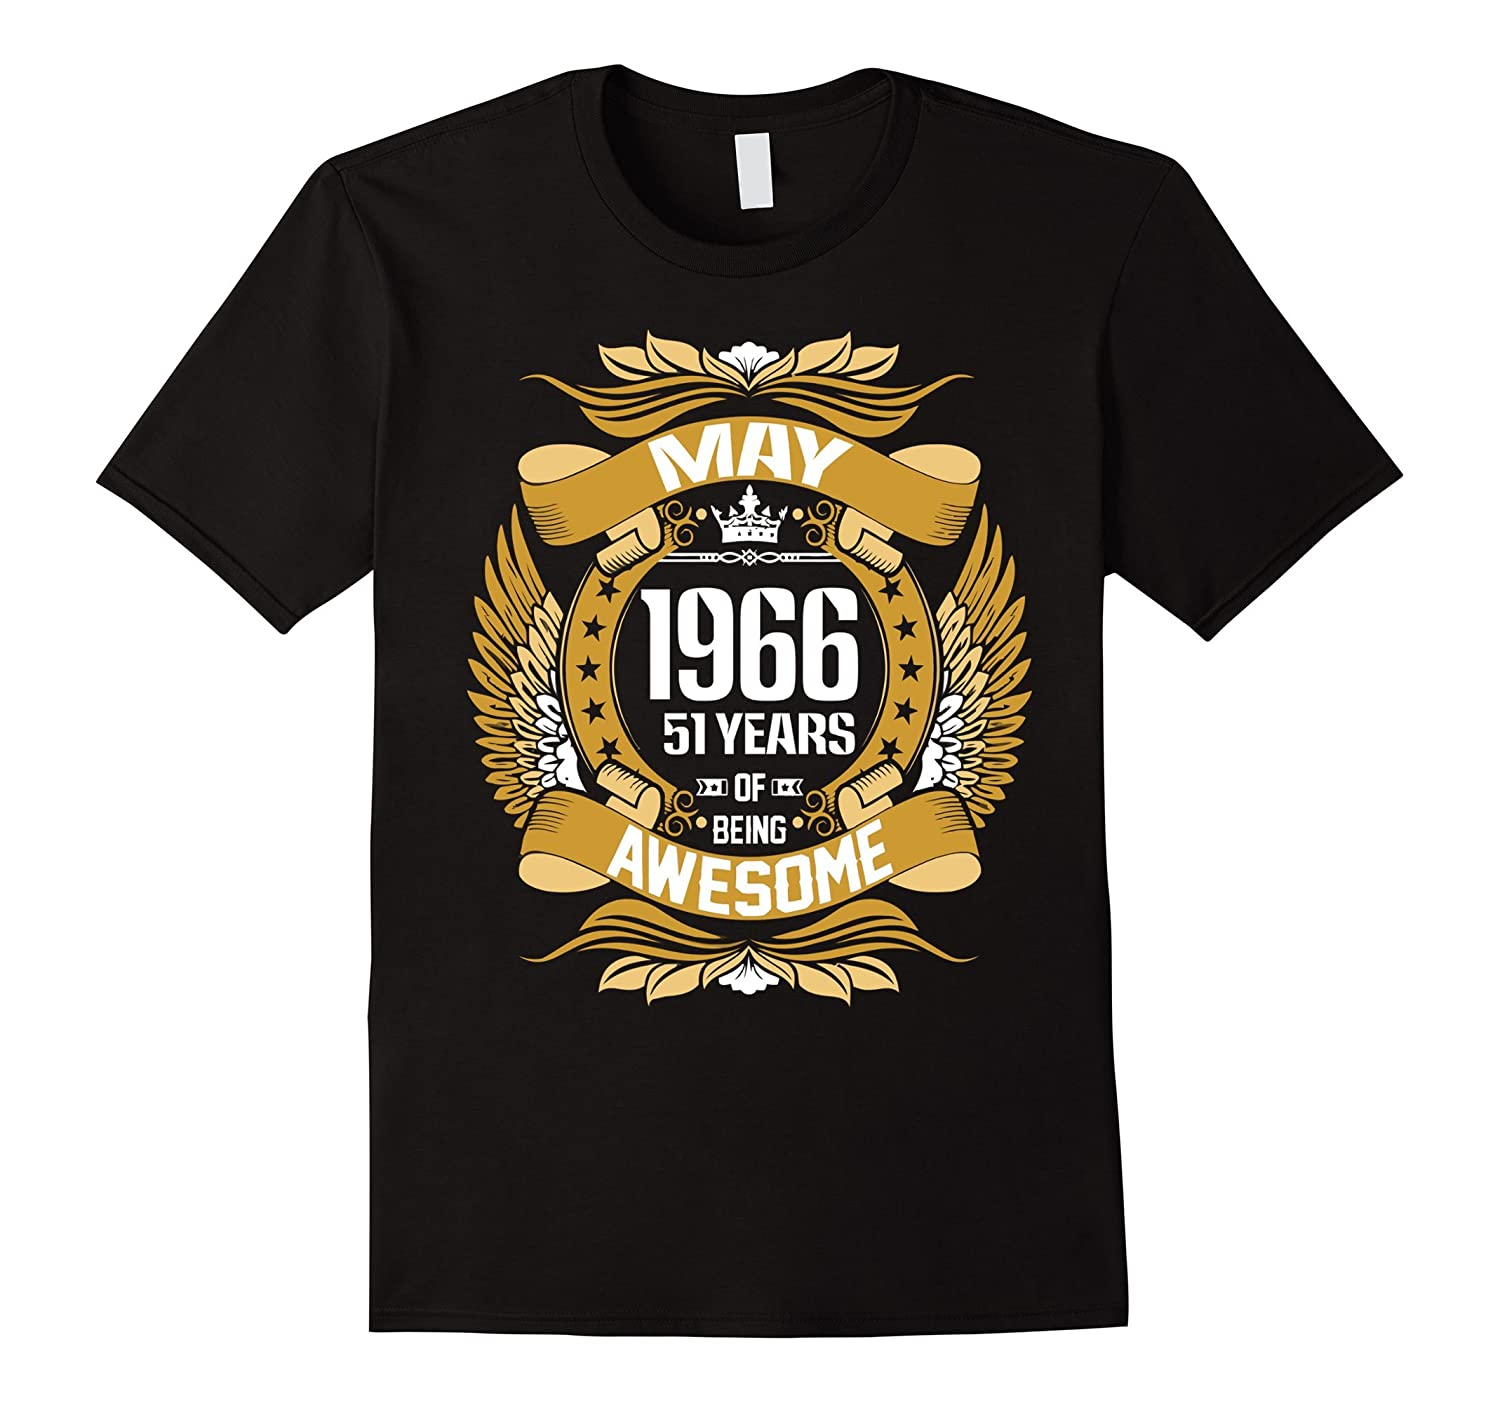 May 1966 51 years of being awesome t shirt-CD